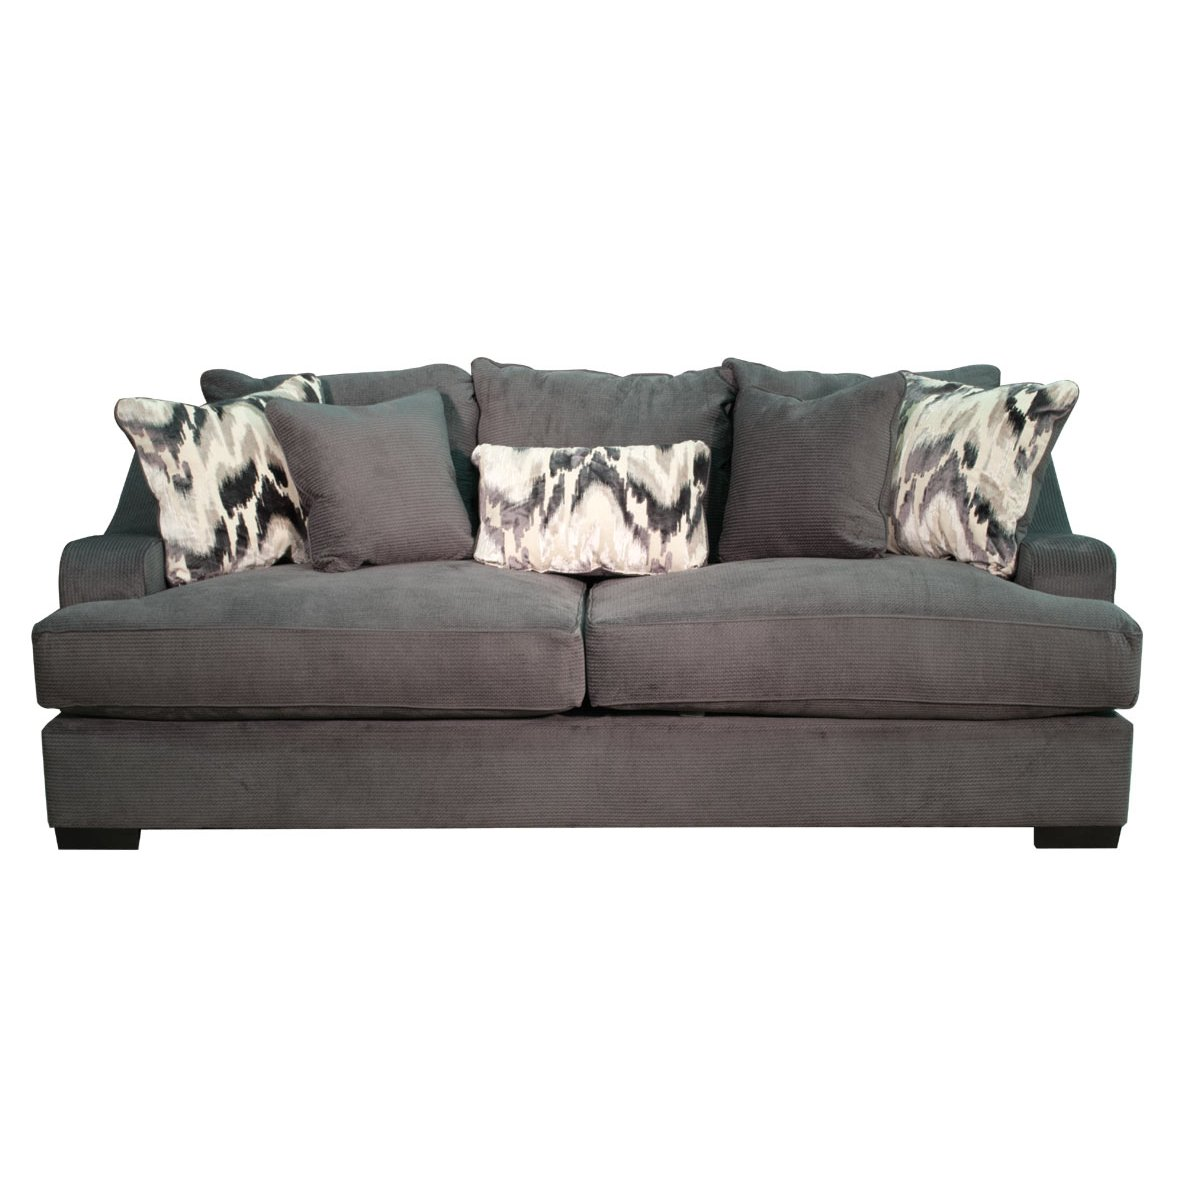 spartan sofa bobs furniture bed charcoal upholstered casual modern